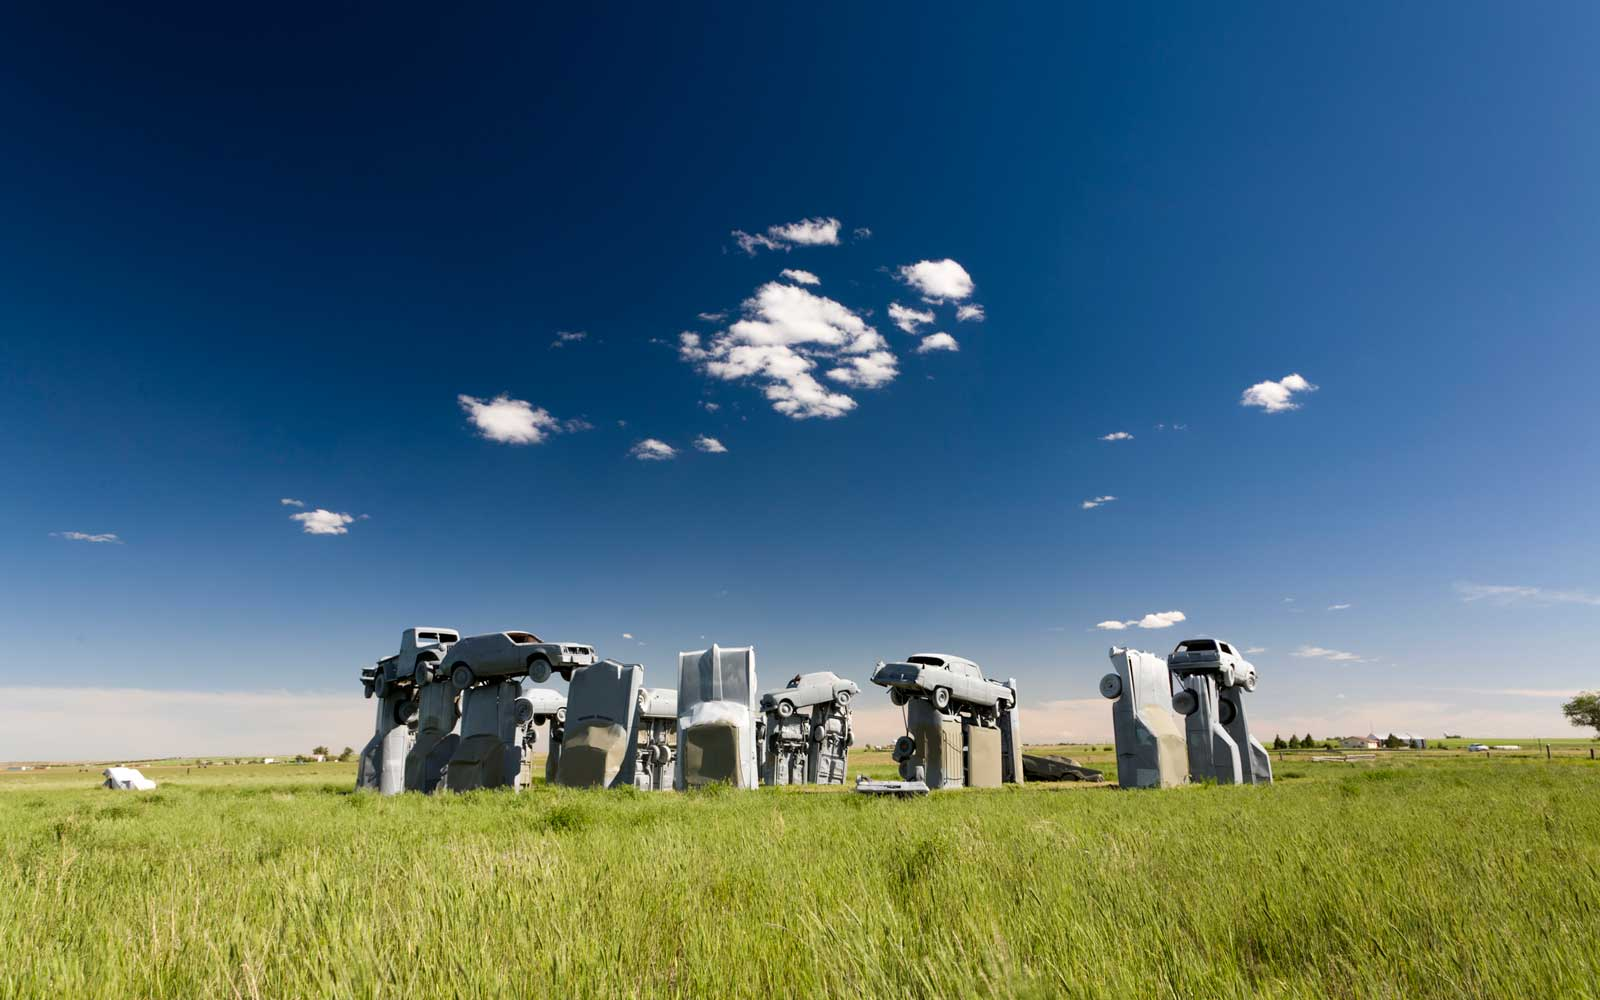 Carhenge, a replica of England's Stonehenge located near the city of Alliance, Nebraska